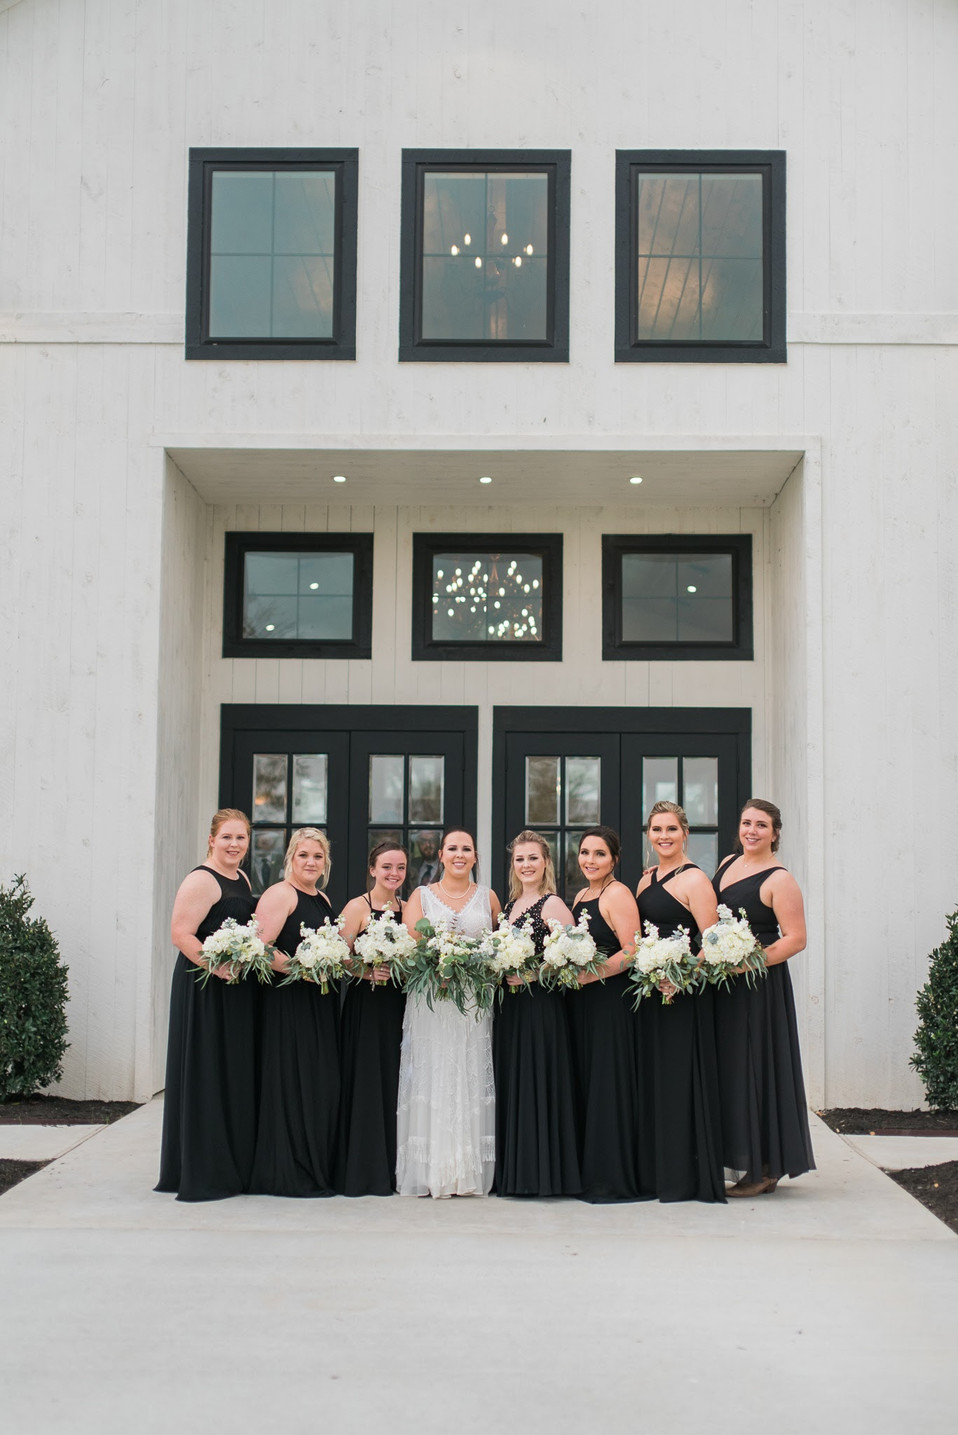 Pre-ceremony photos - Bridal party